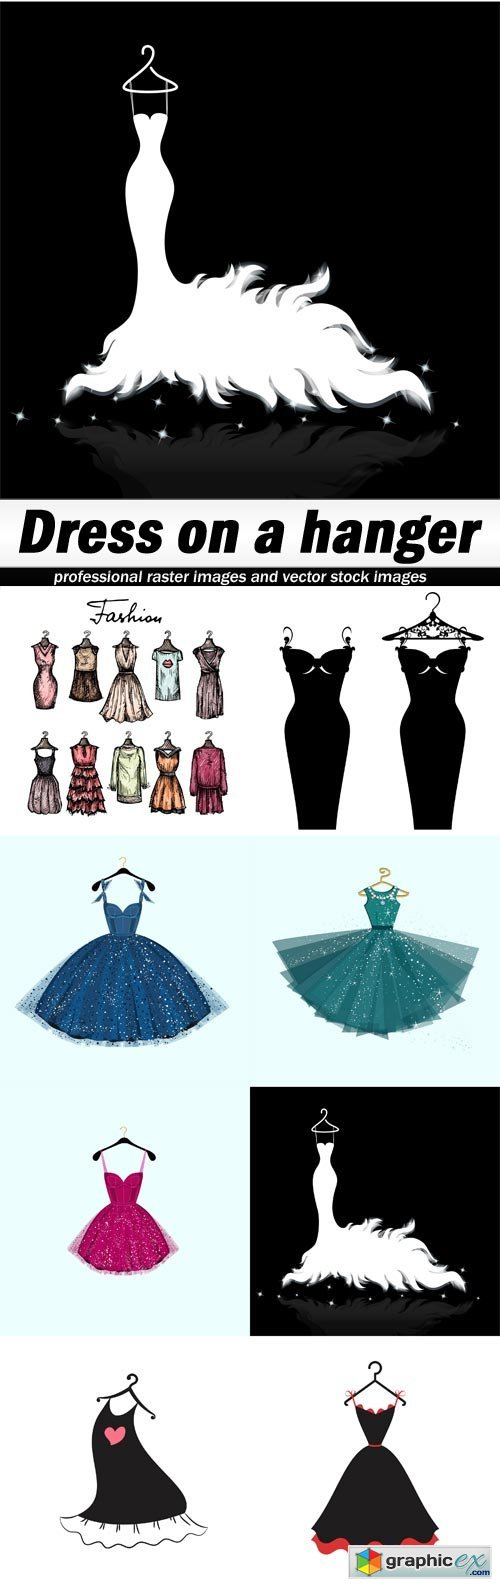 Dress on a hanger - 8 EPS